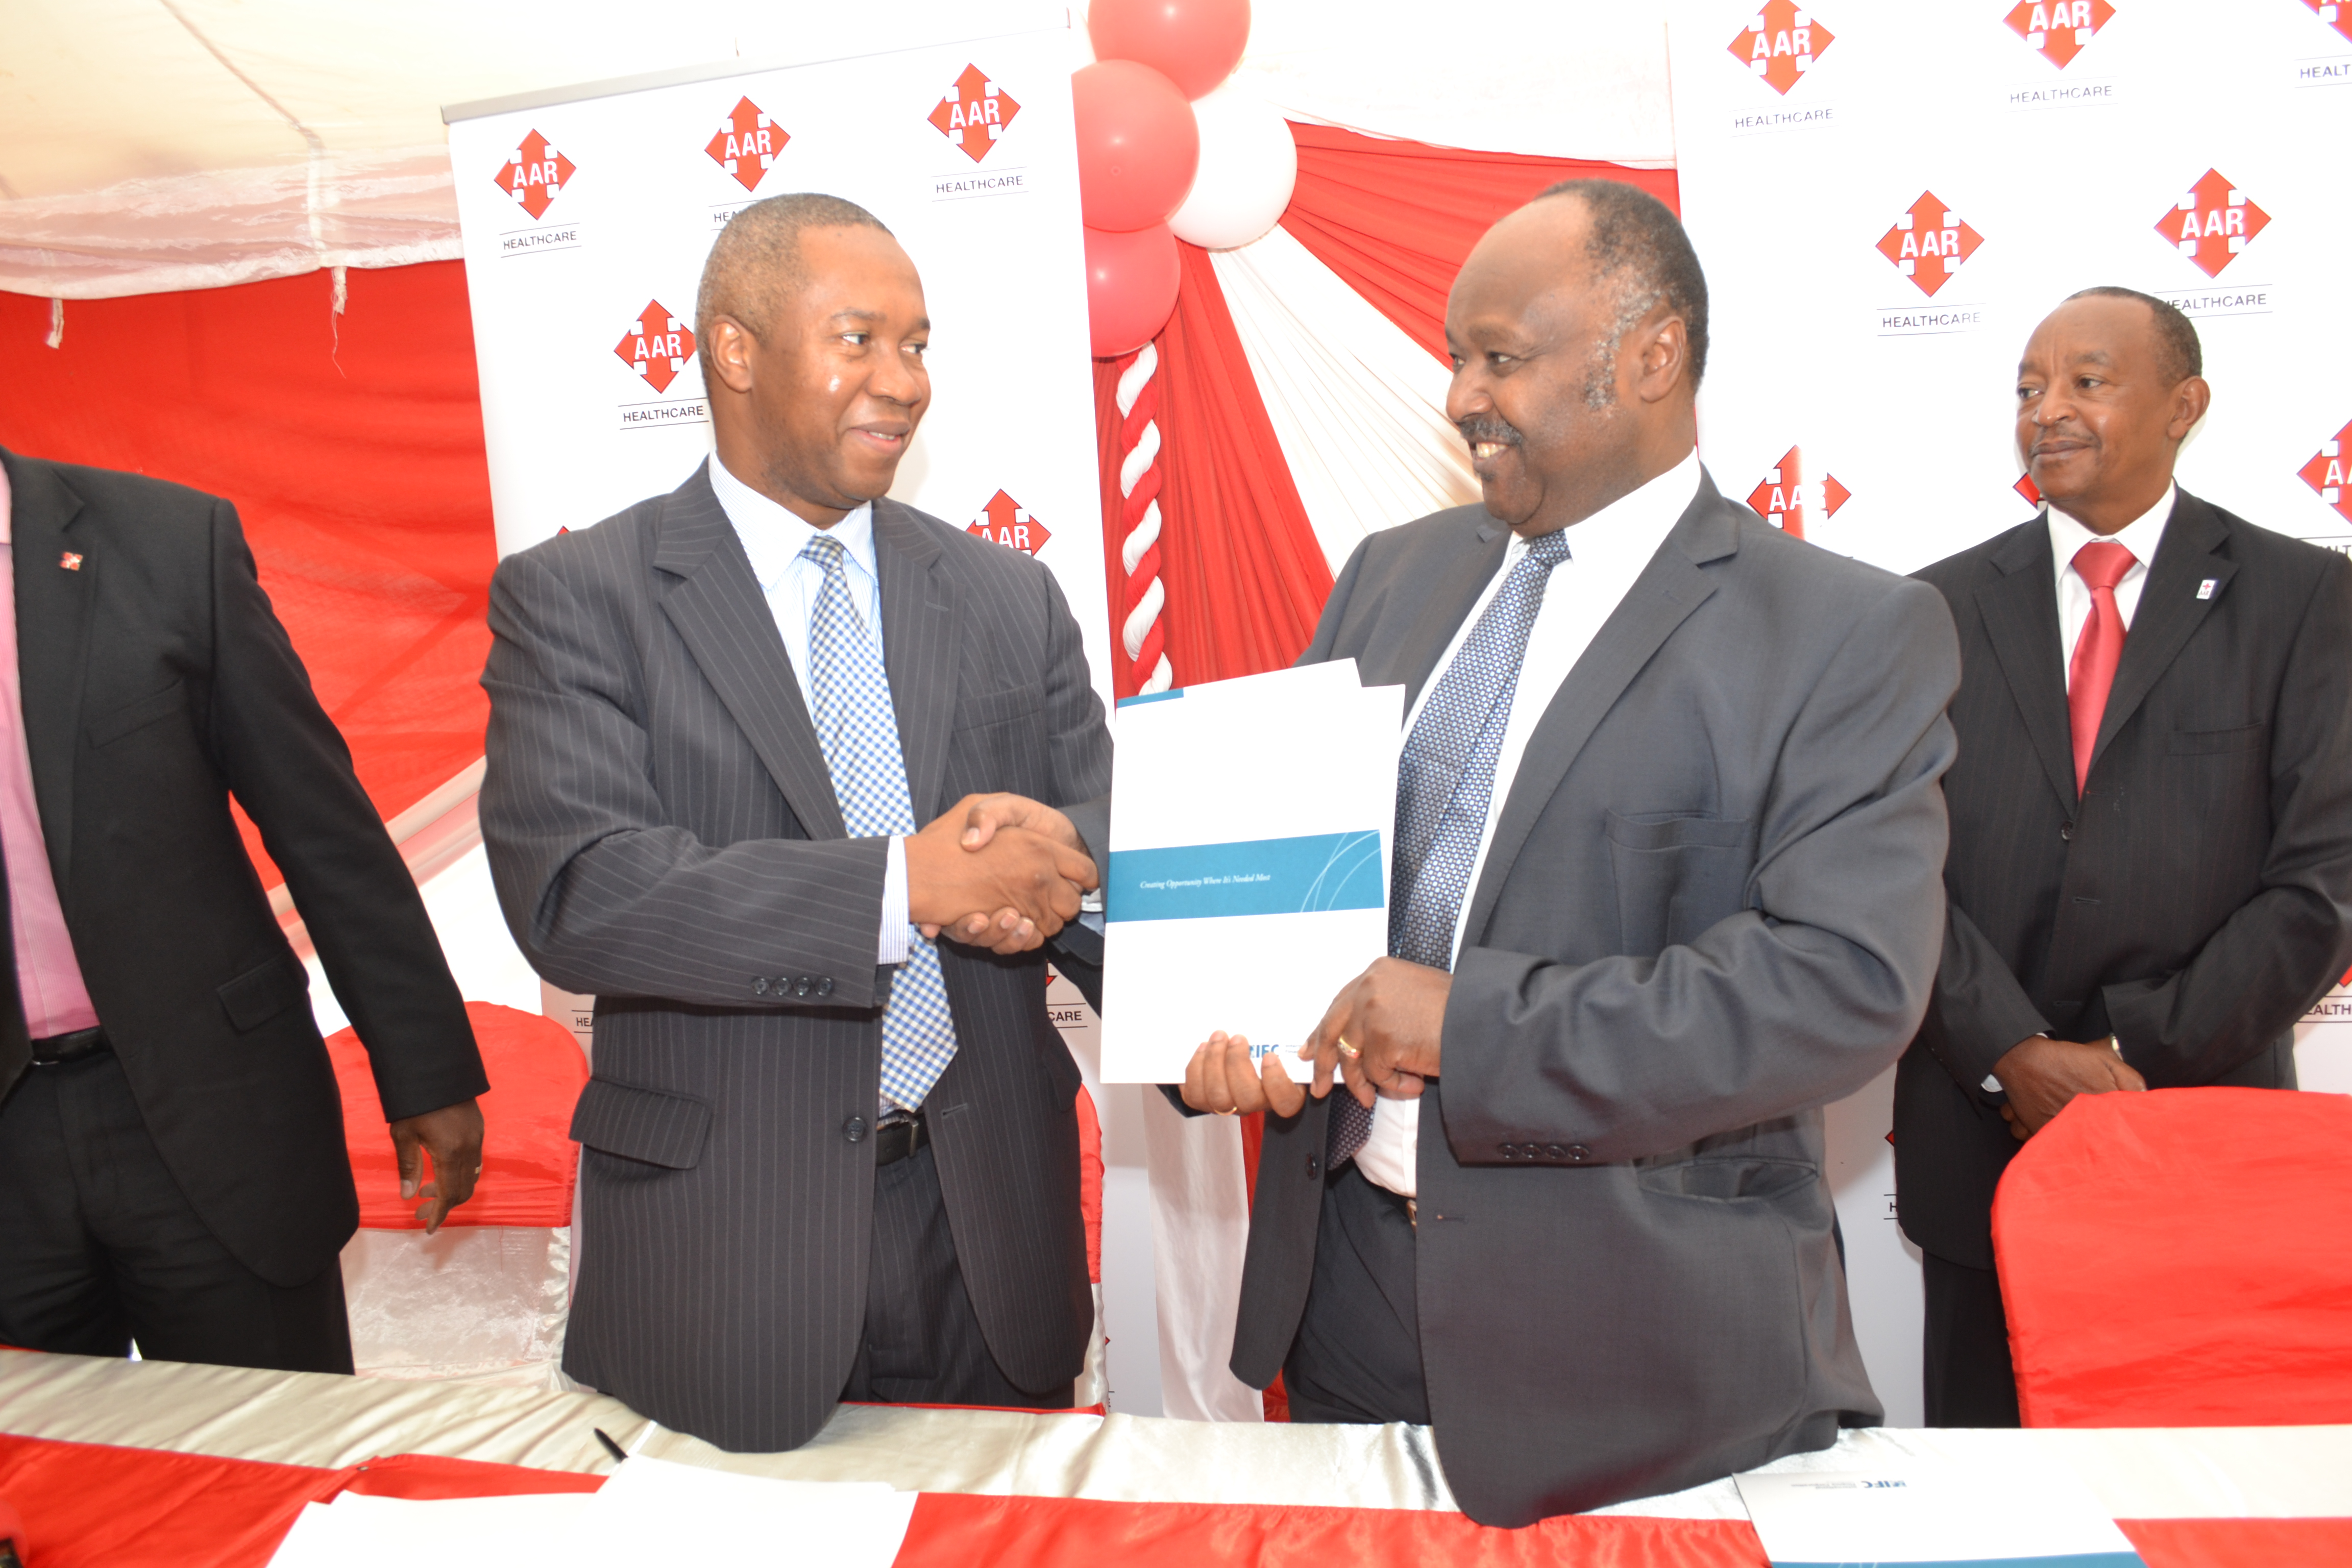 IFC Invests in AAR to Improve Health Services in East Africa